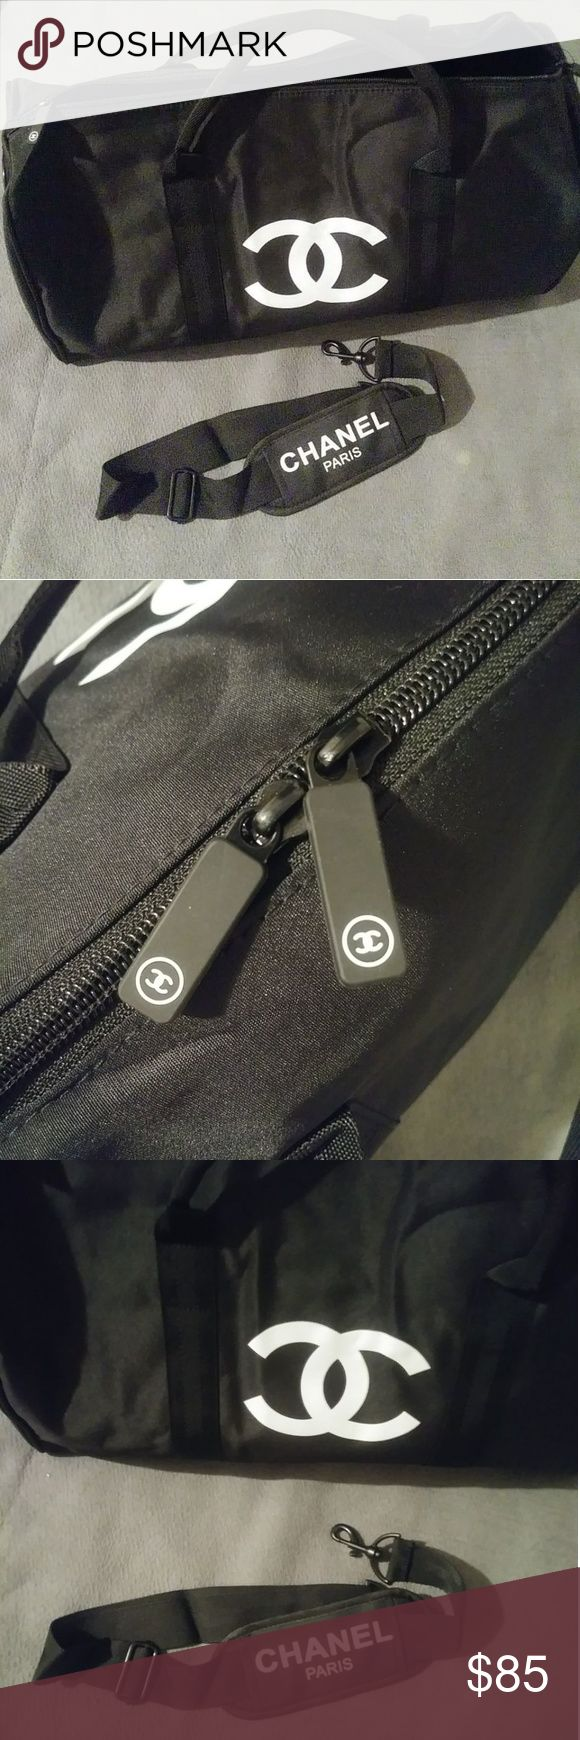 Chanel Duffle Bag VIP Gift Brand New Chanel Sports Duffle Bag VIP Gift L18 x H12 x D8  Has Chanel VIP Gift Tag Inside Not Sold in Stores CHANEL Other